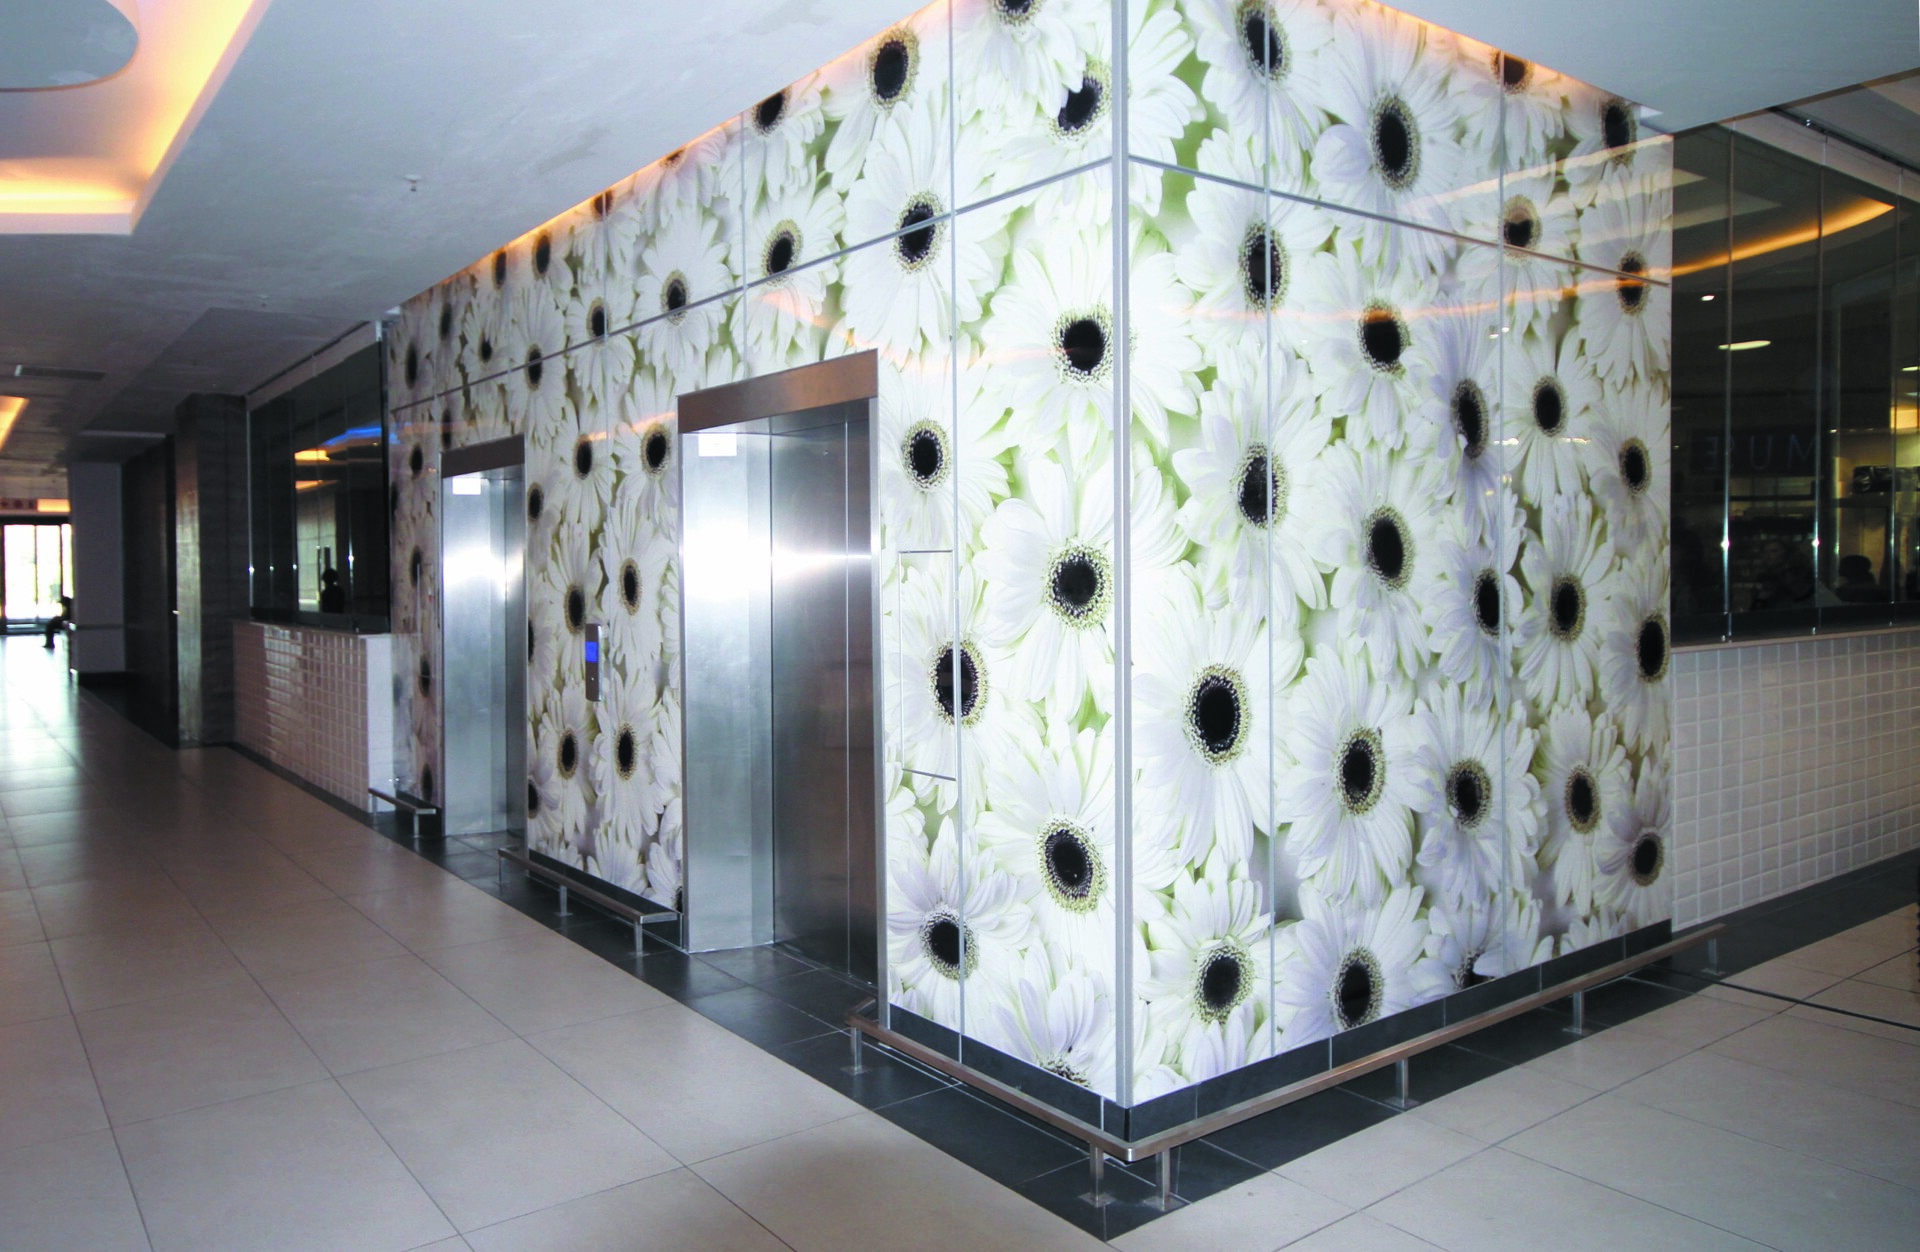 Graphic wall designs are a great way to make a bold statement in your establishment.  Here they are making a statement by the elevators.  Fusion can elevate your brand or personalize your home on any budget. By combining our ever-expanding line of graphics or your own artwork with our more than a dozen substrate options, you can make a unique, custom design perfect for your business or home.   You can use Fusion for such applications as wall art, divider panels, displays, and large format murals allowing you to stand out from the crowd. Your imagination is the limit!